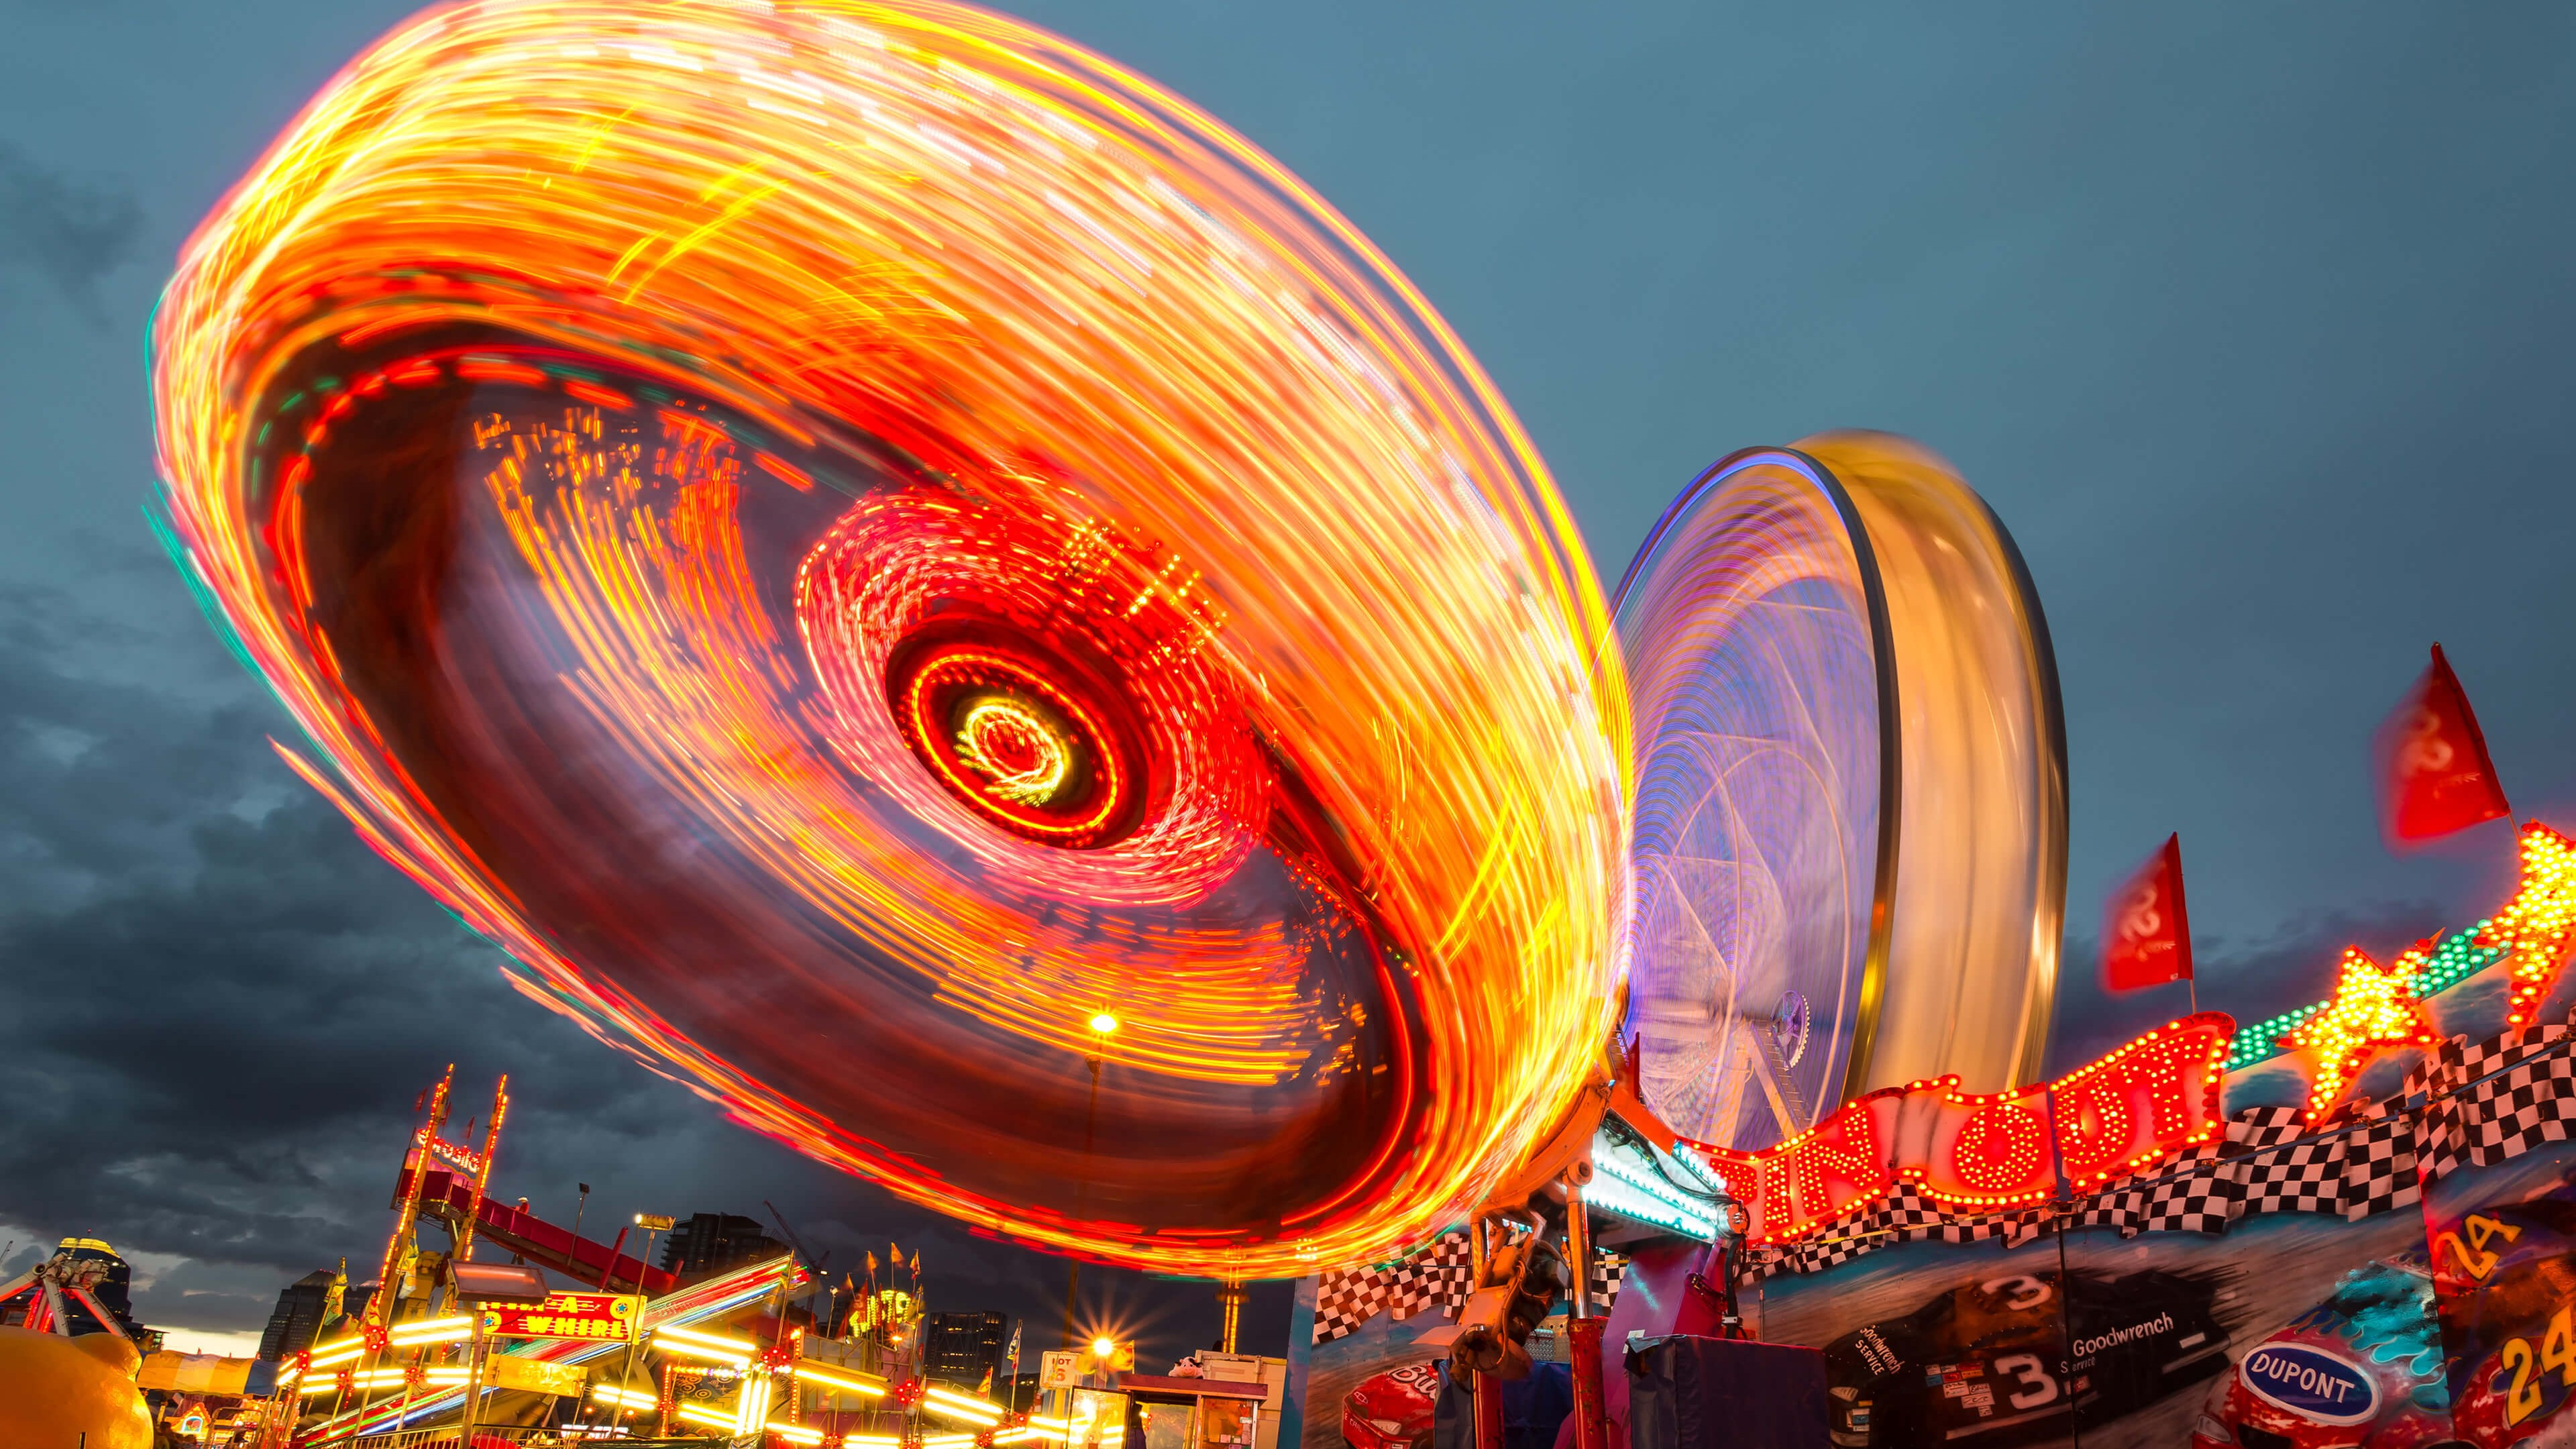 Download Calgary Stampede Lights HD wallpaper for 4K 3840 x 2160 3840x2160